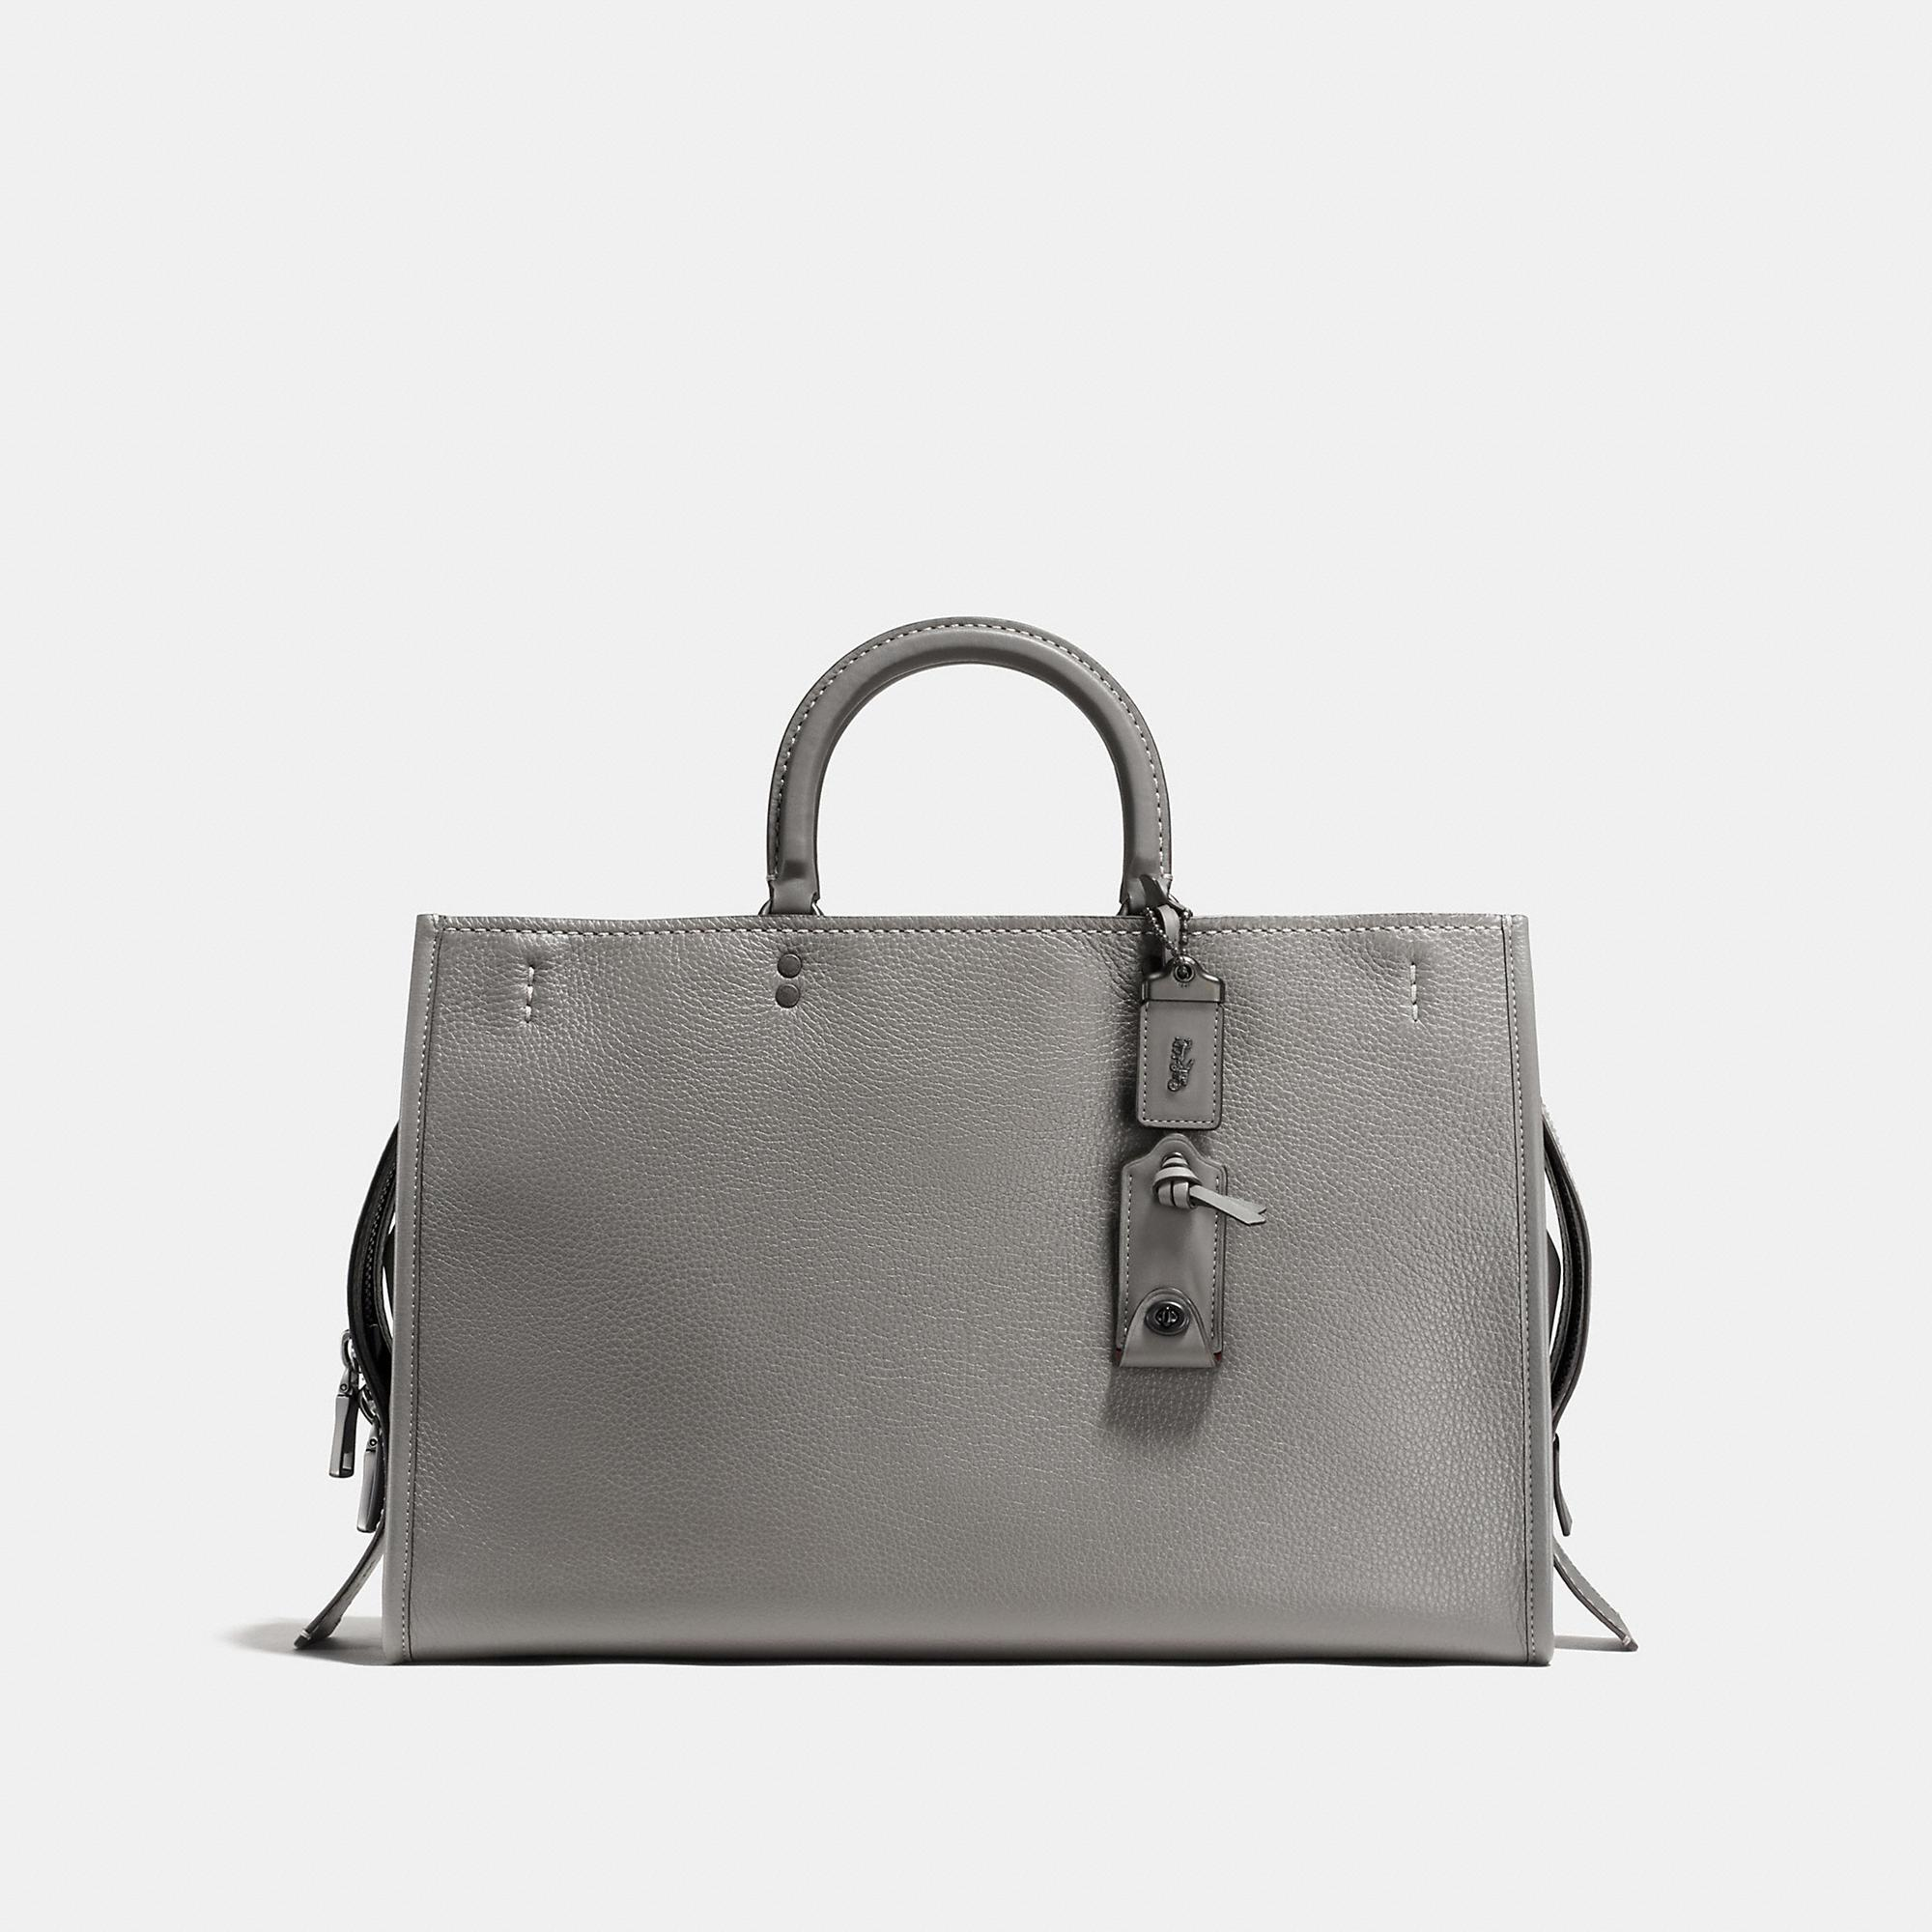 Coach Rogue 39 In Glovetanned Pebble Leather In Heather Grey/black Copper